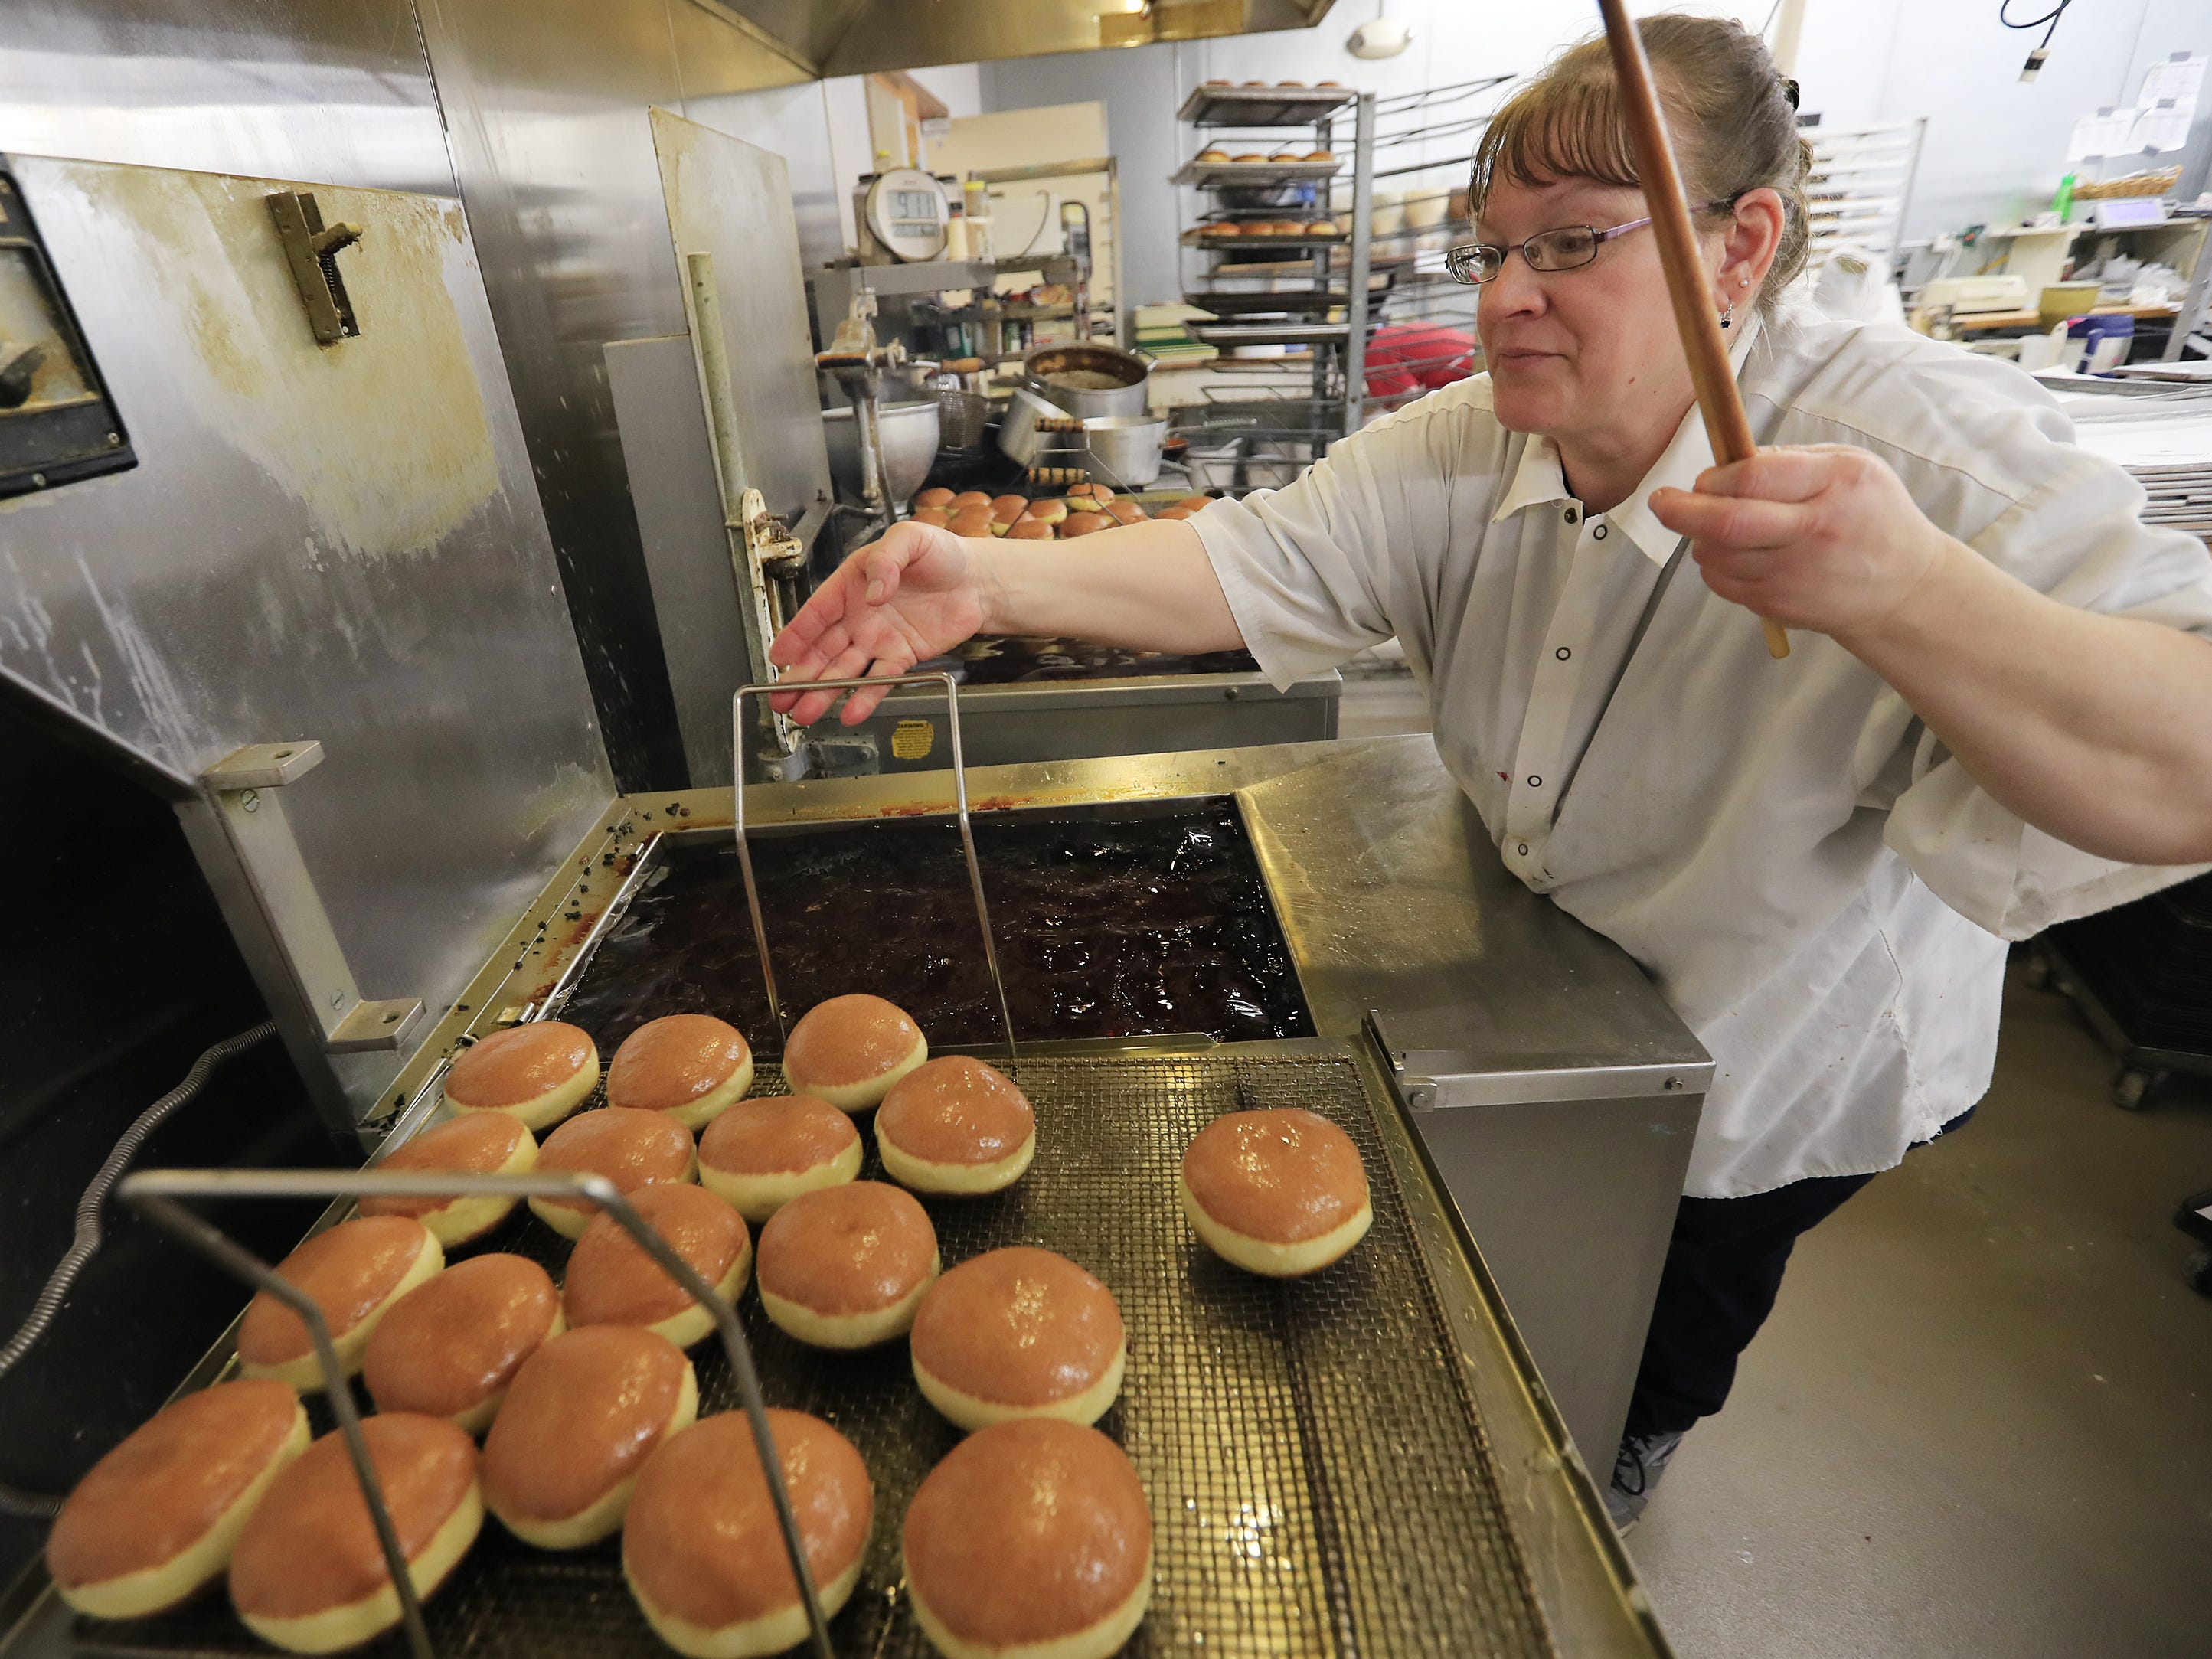 Janice Smurawa takes a batch of paczki out of the fryer at Smurawa's Country Bakery on Tuesday, Feb. 26, 2019, in Pulaski.